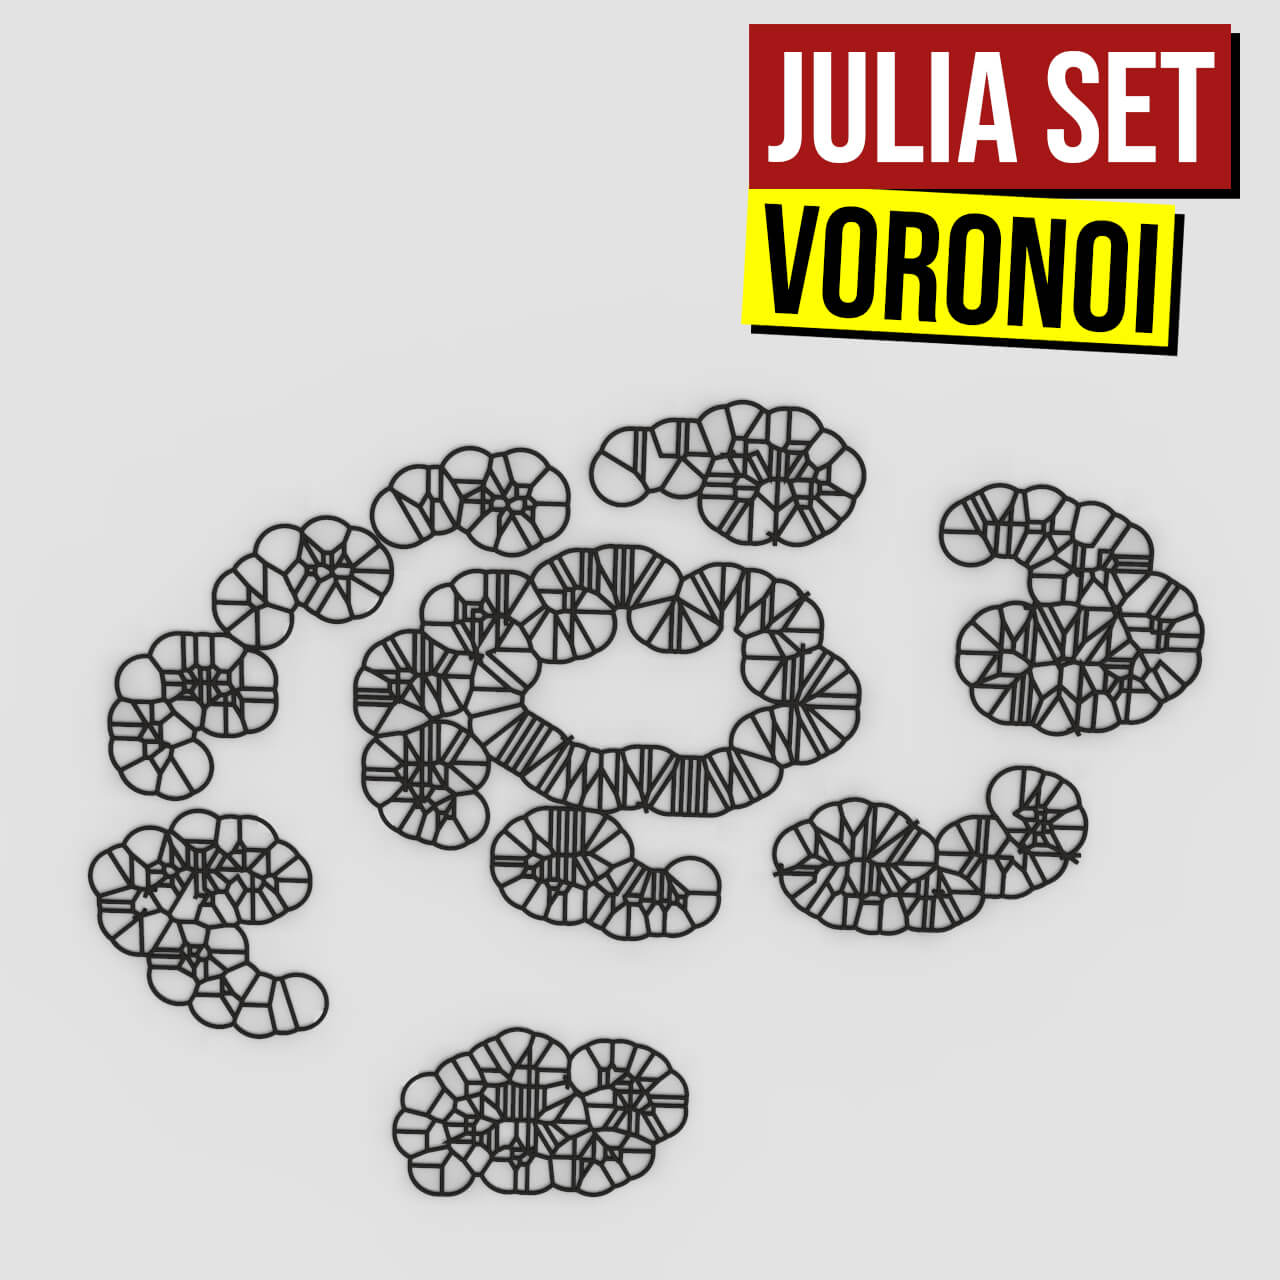 julia set voronoi1280